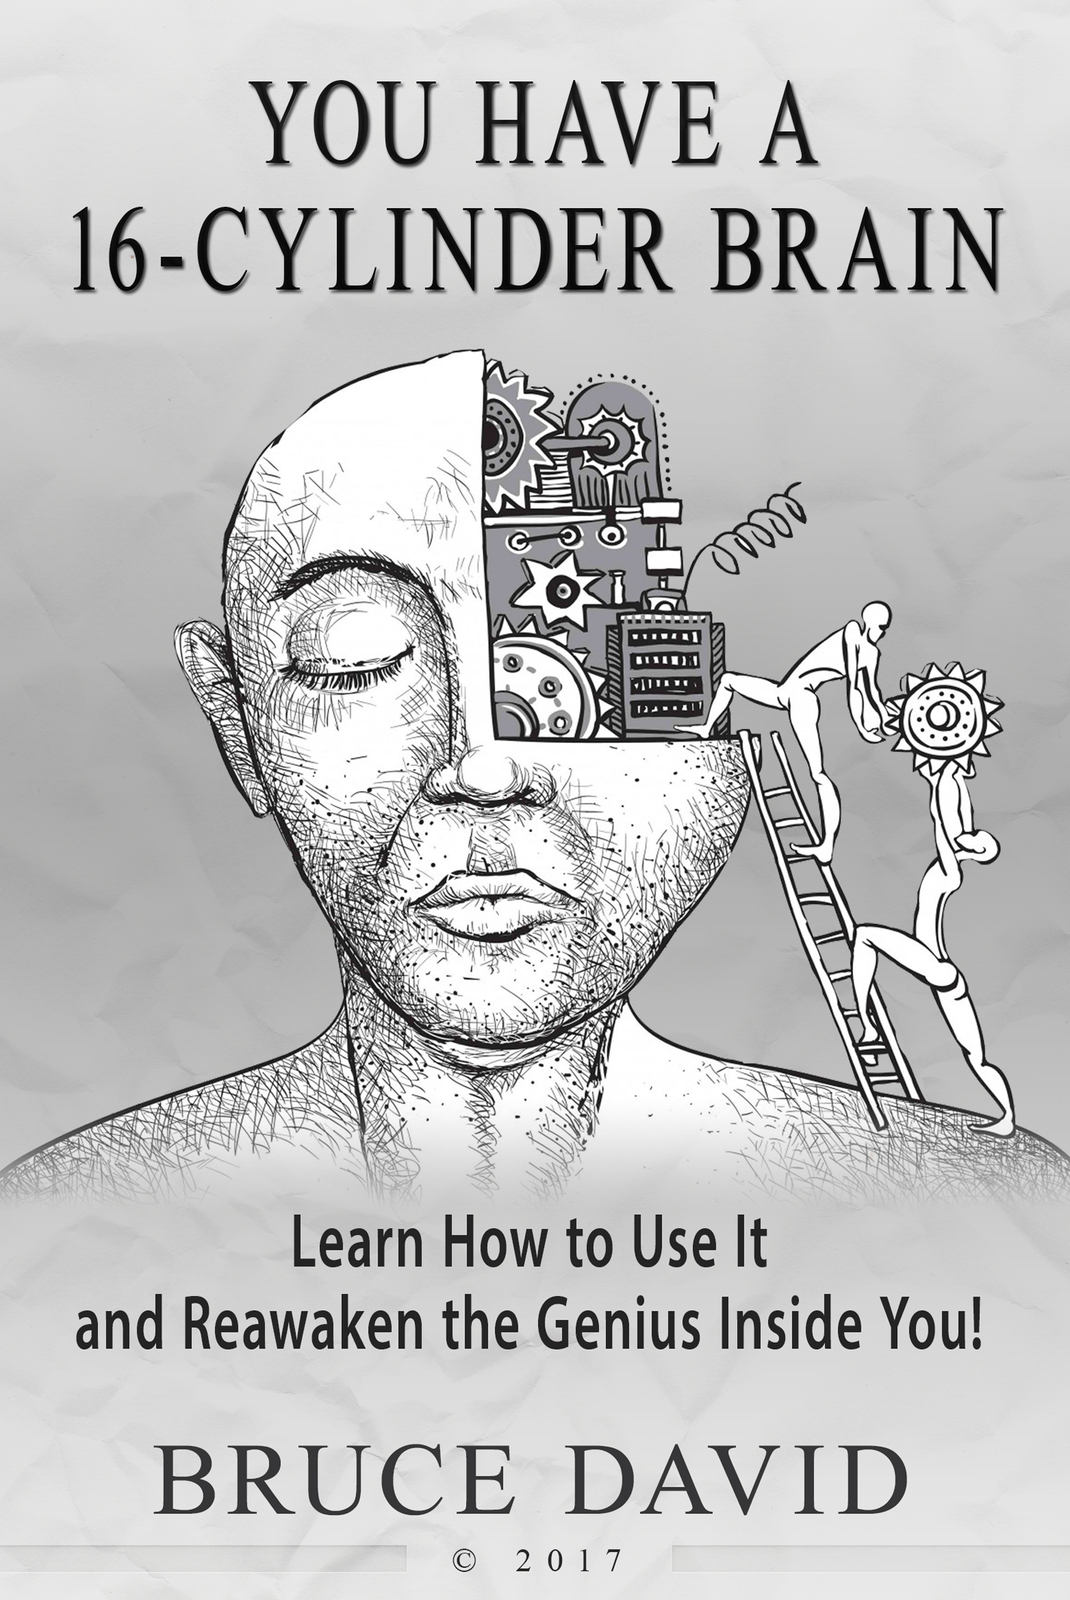 You Have a 16-Cylinder Brain-Learn How to Use it & Re-Awaken the Genius Inside Y